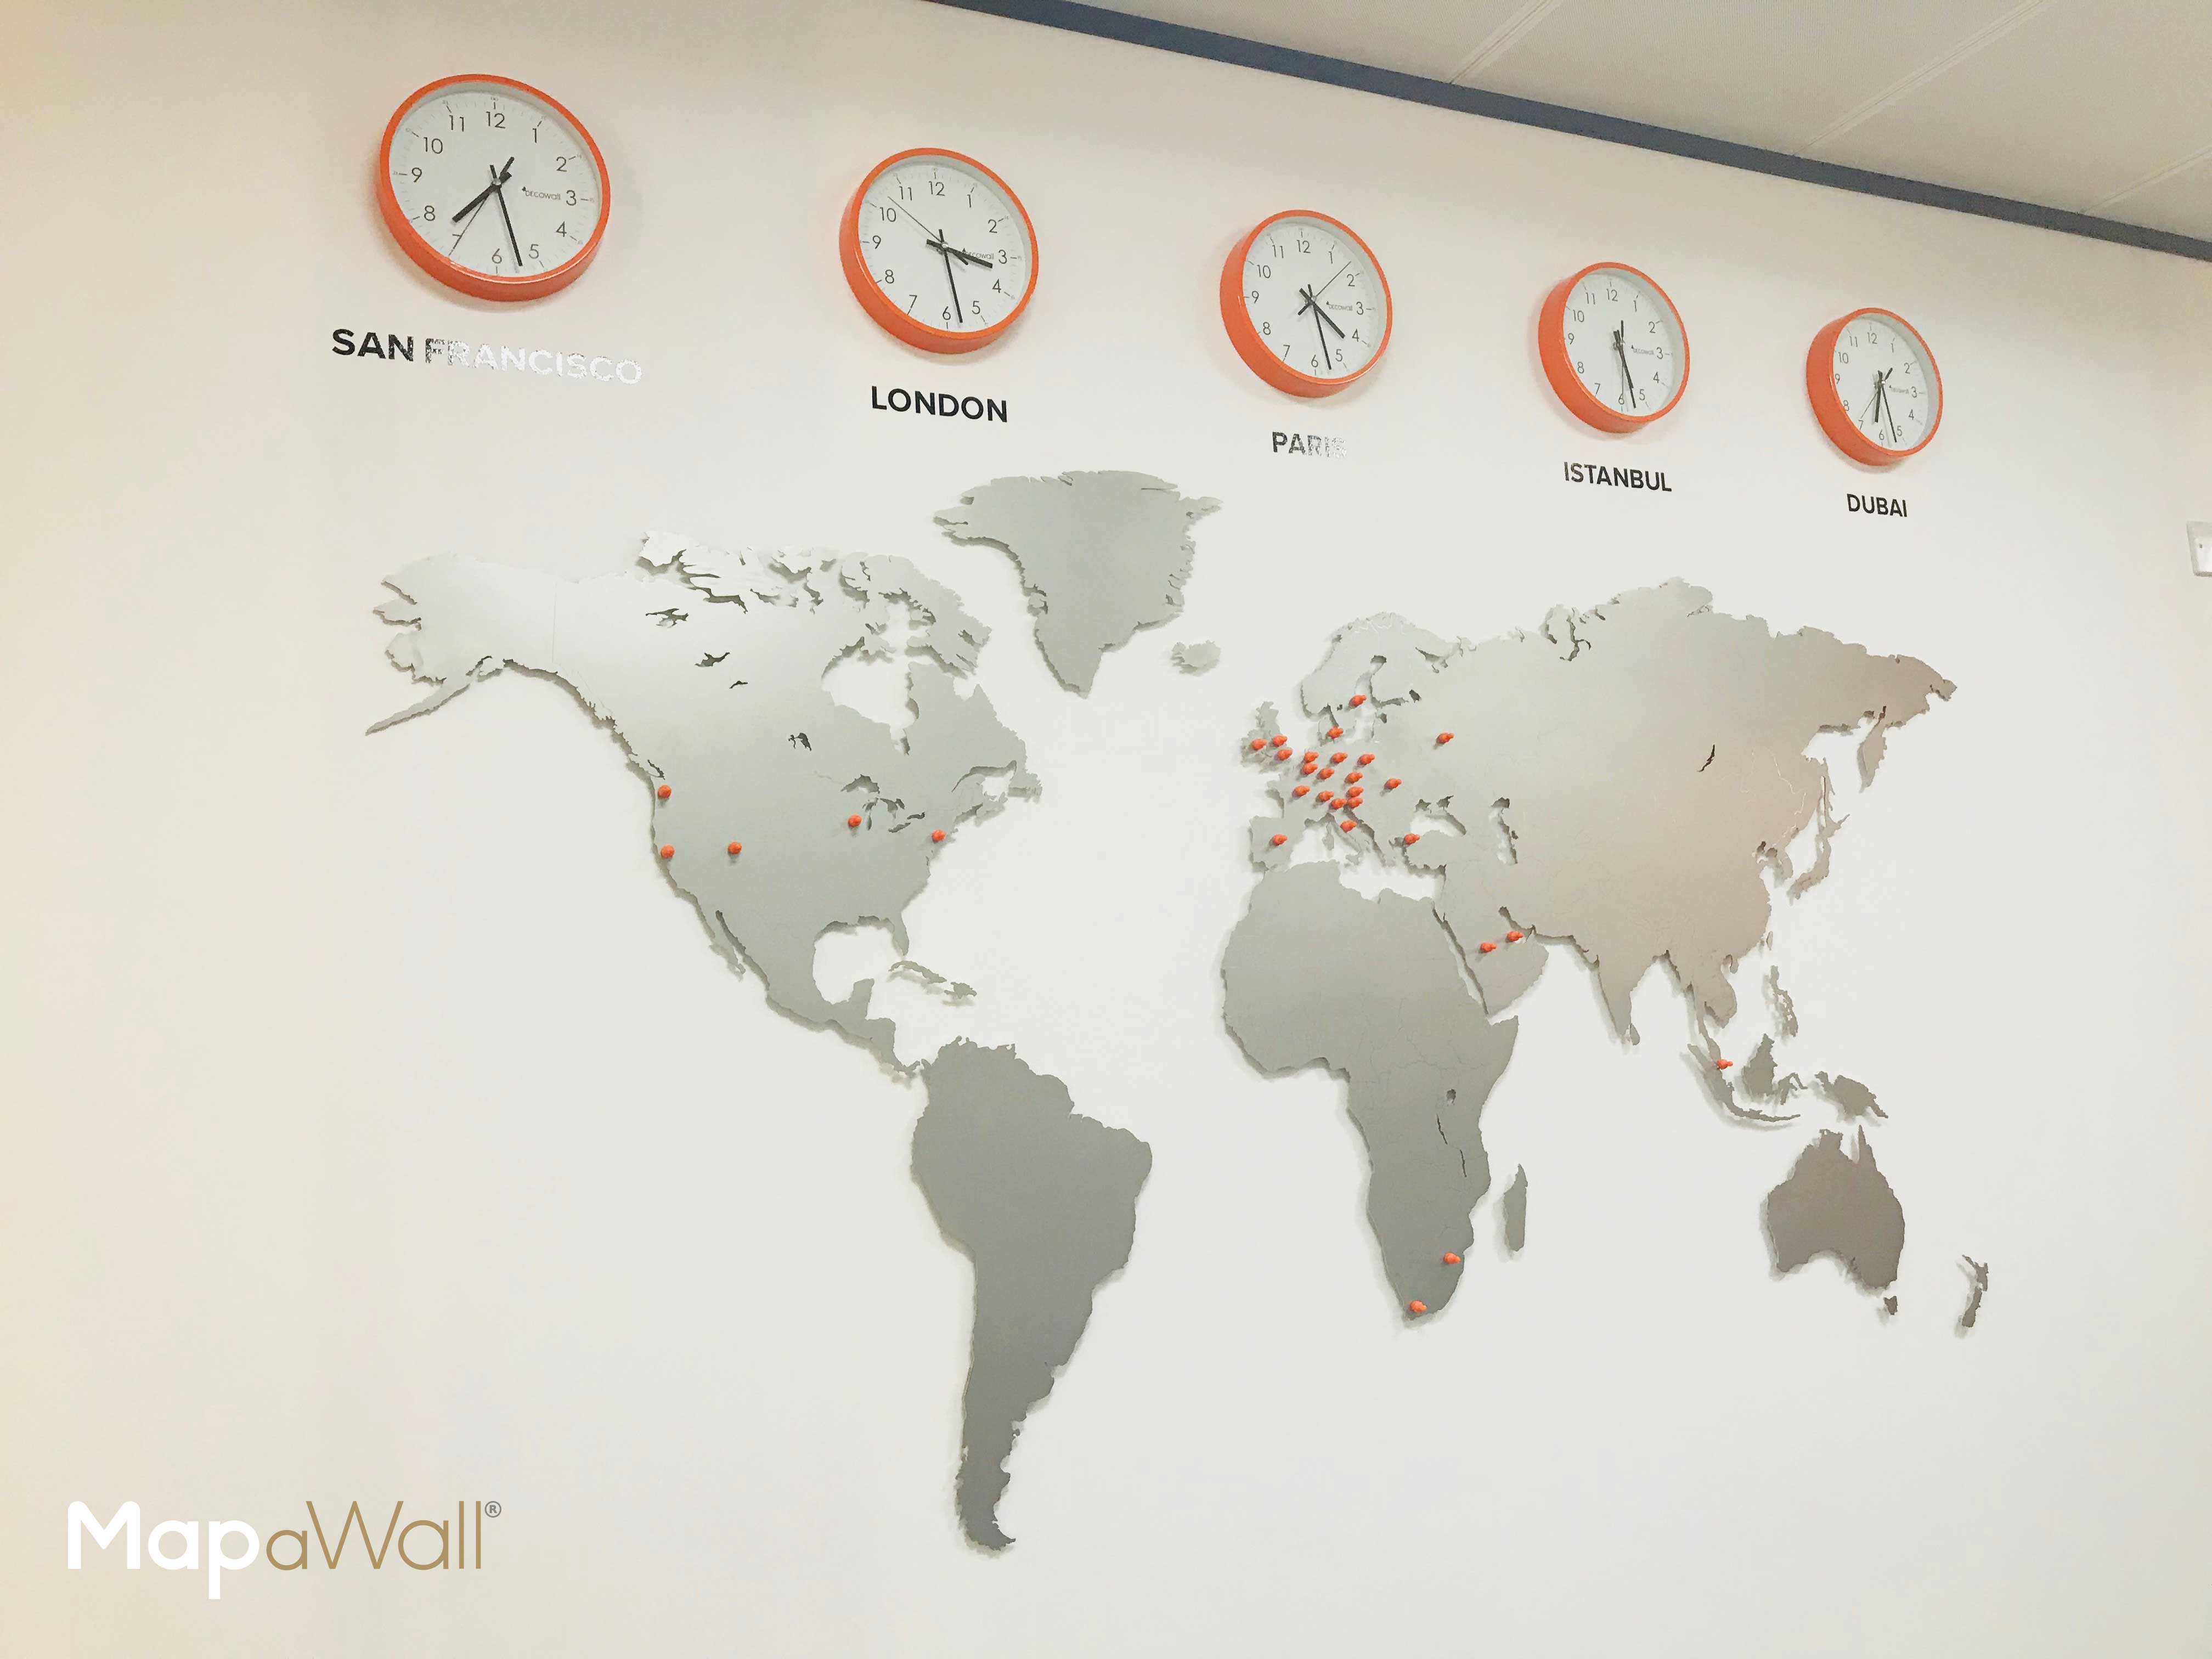 MapaWall-Steel-world-map-Surrey-UK Magnetic Wall Map on home wall maps, magnetic us maps, vinyl wall maps, wood wall maps, creative wall maps, electronic wall maps, paris wall maps, red wall maps, dry erase wall maps, blue wall maps, laminated wall maps, glass wall maps,